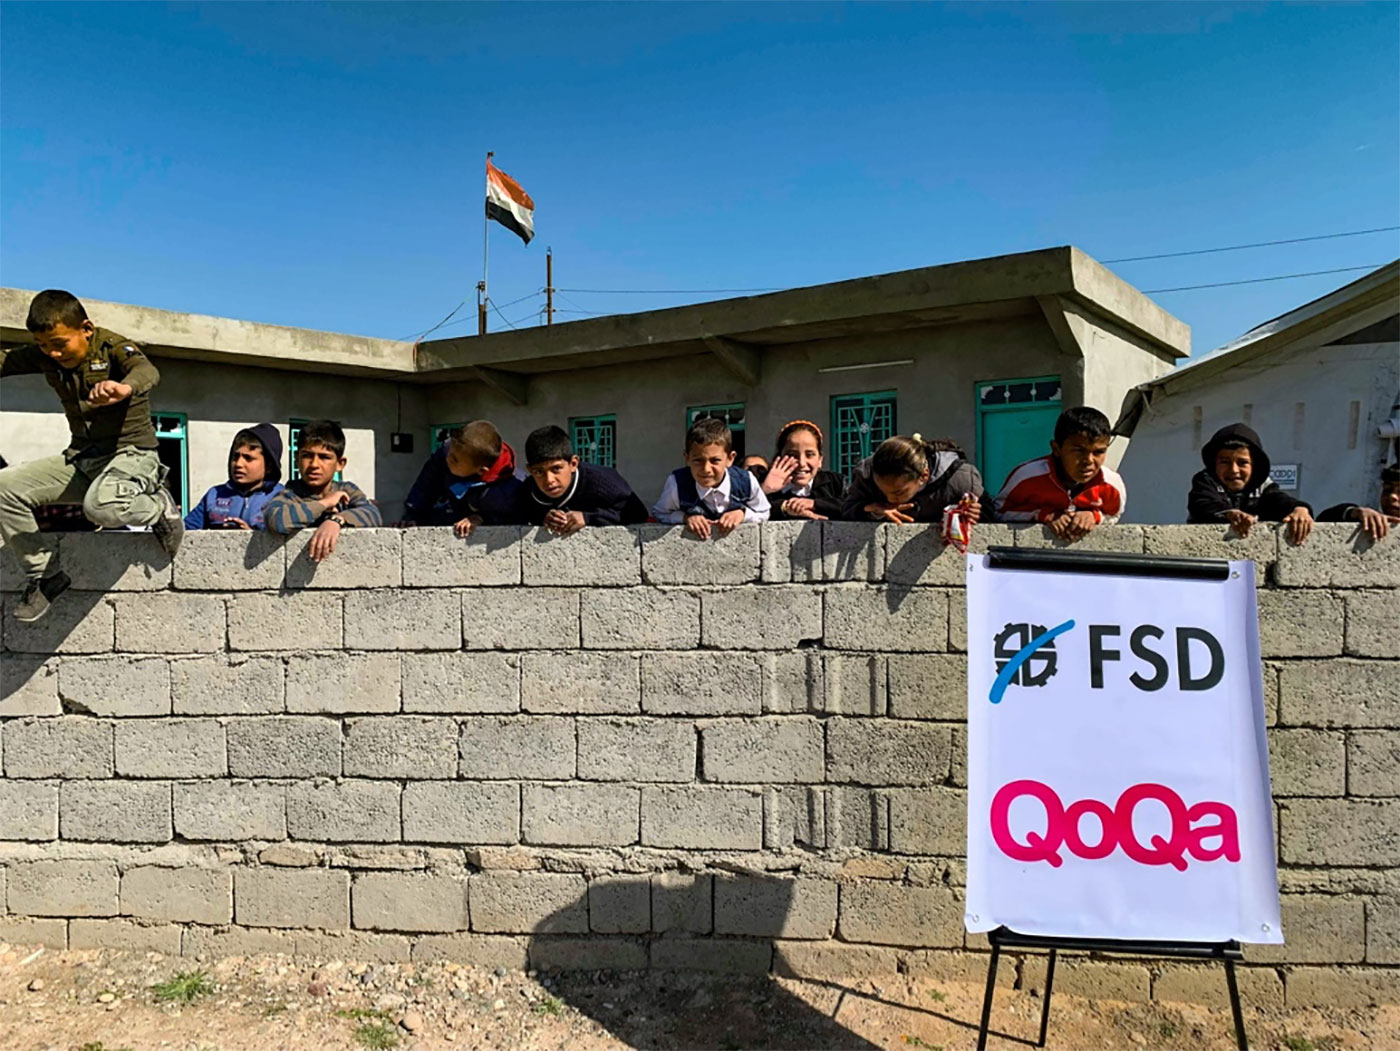 whiteboard with fsd and qoqa logo